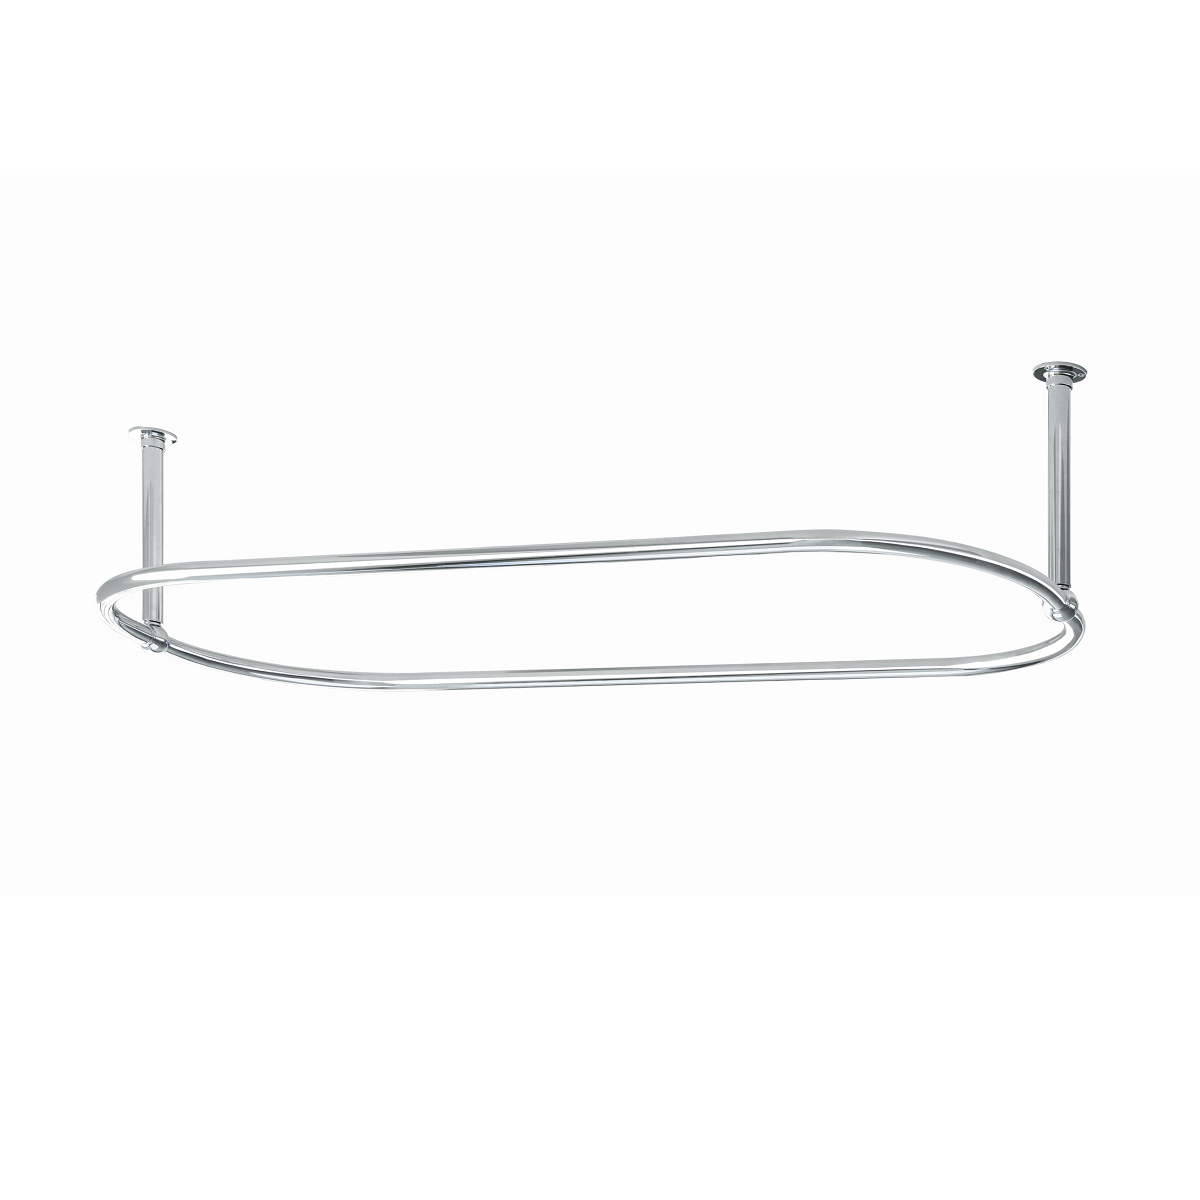 Traditional Oval 1500mm X 700mm Shower Curtain Rail